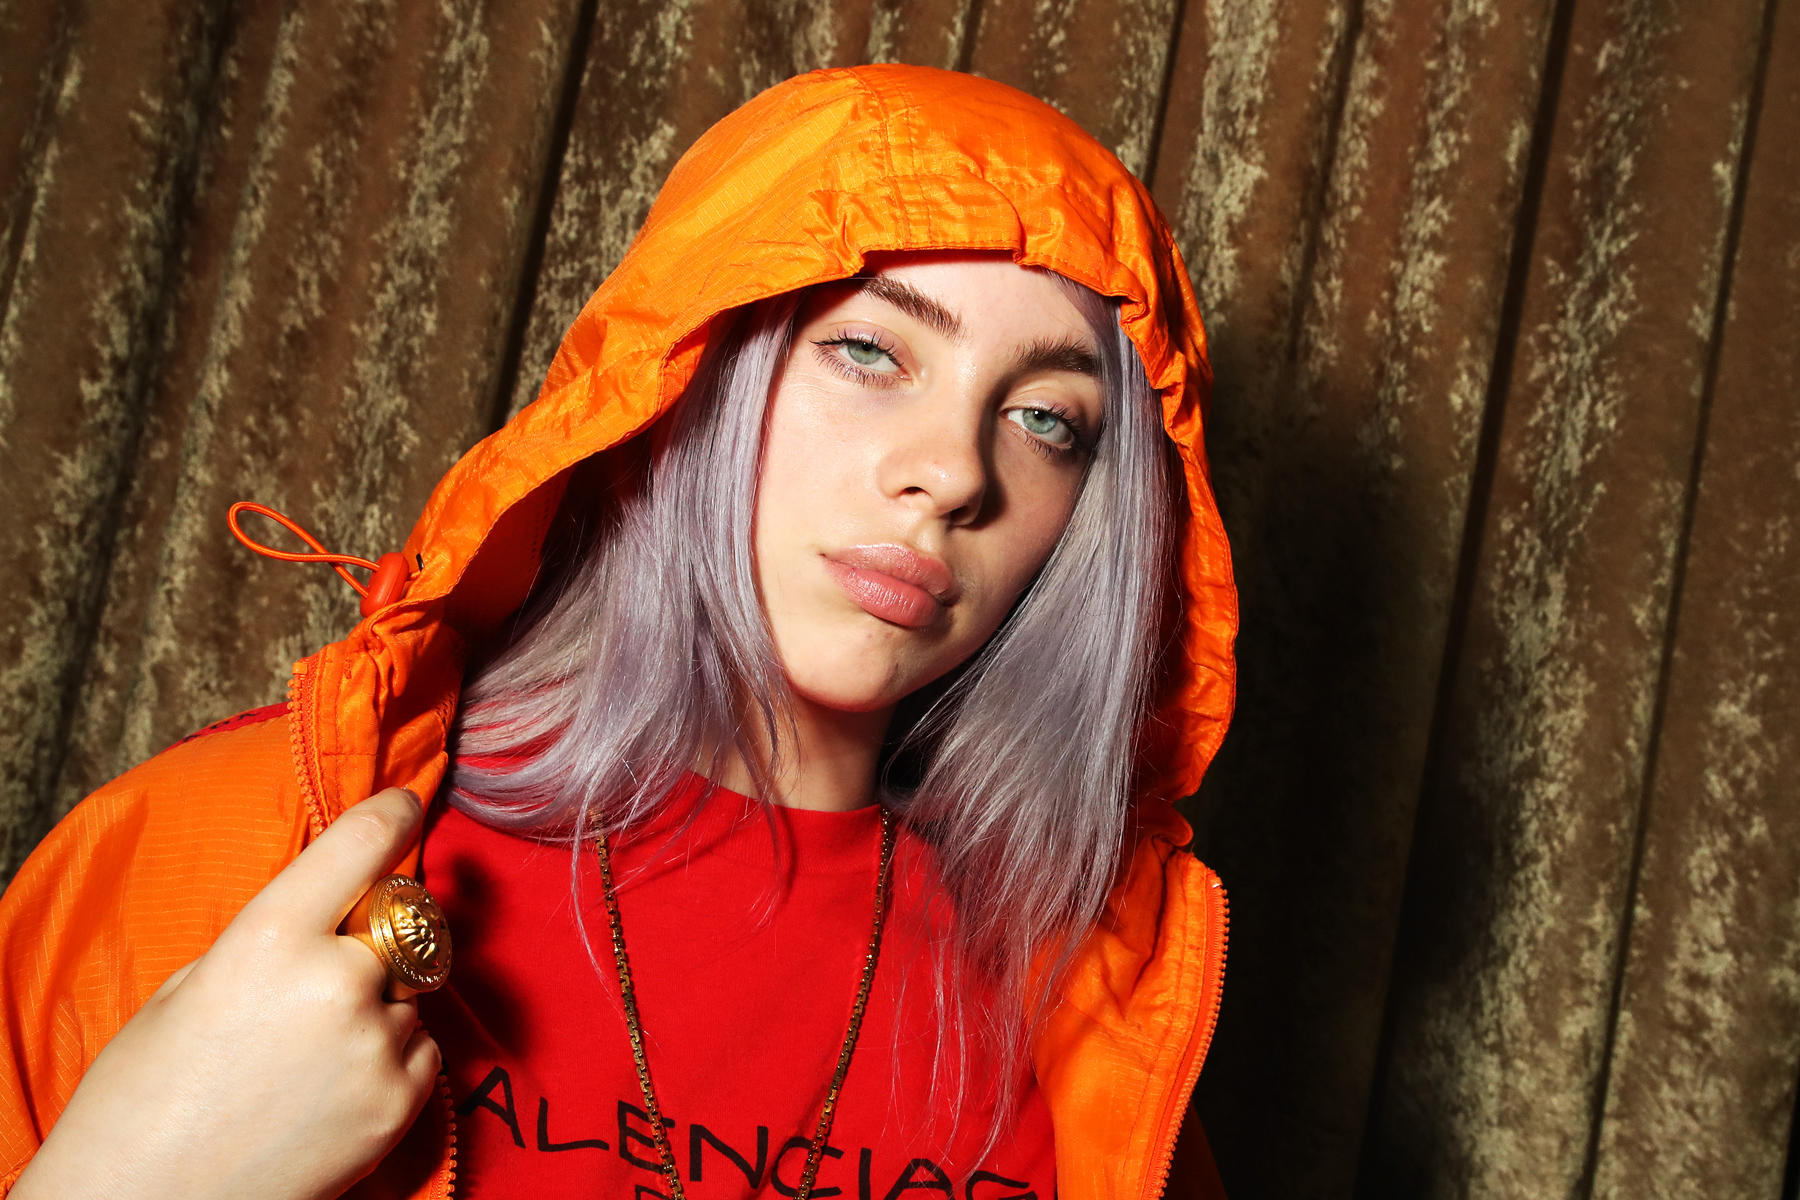 Hear Billie Eilish's Sprawling Holiday Ballad 'Come Out and Play'